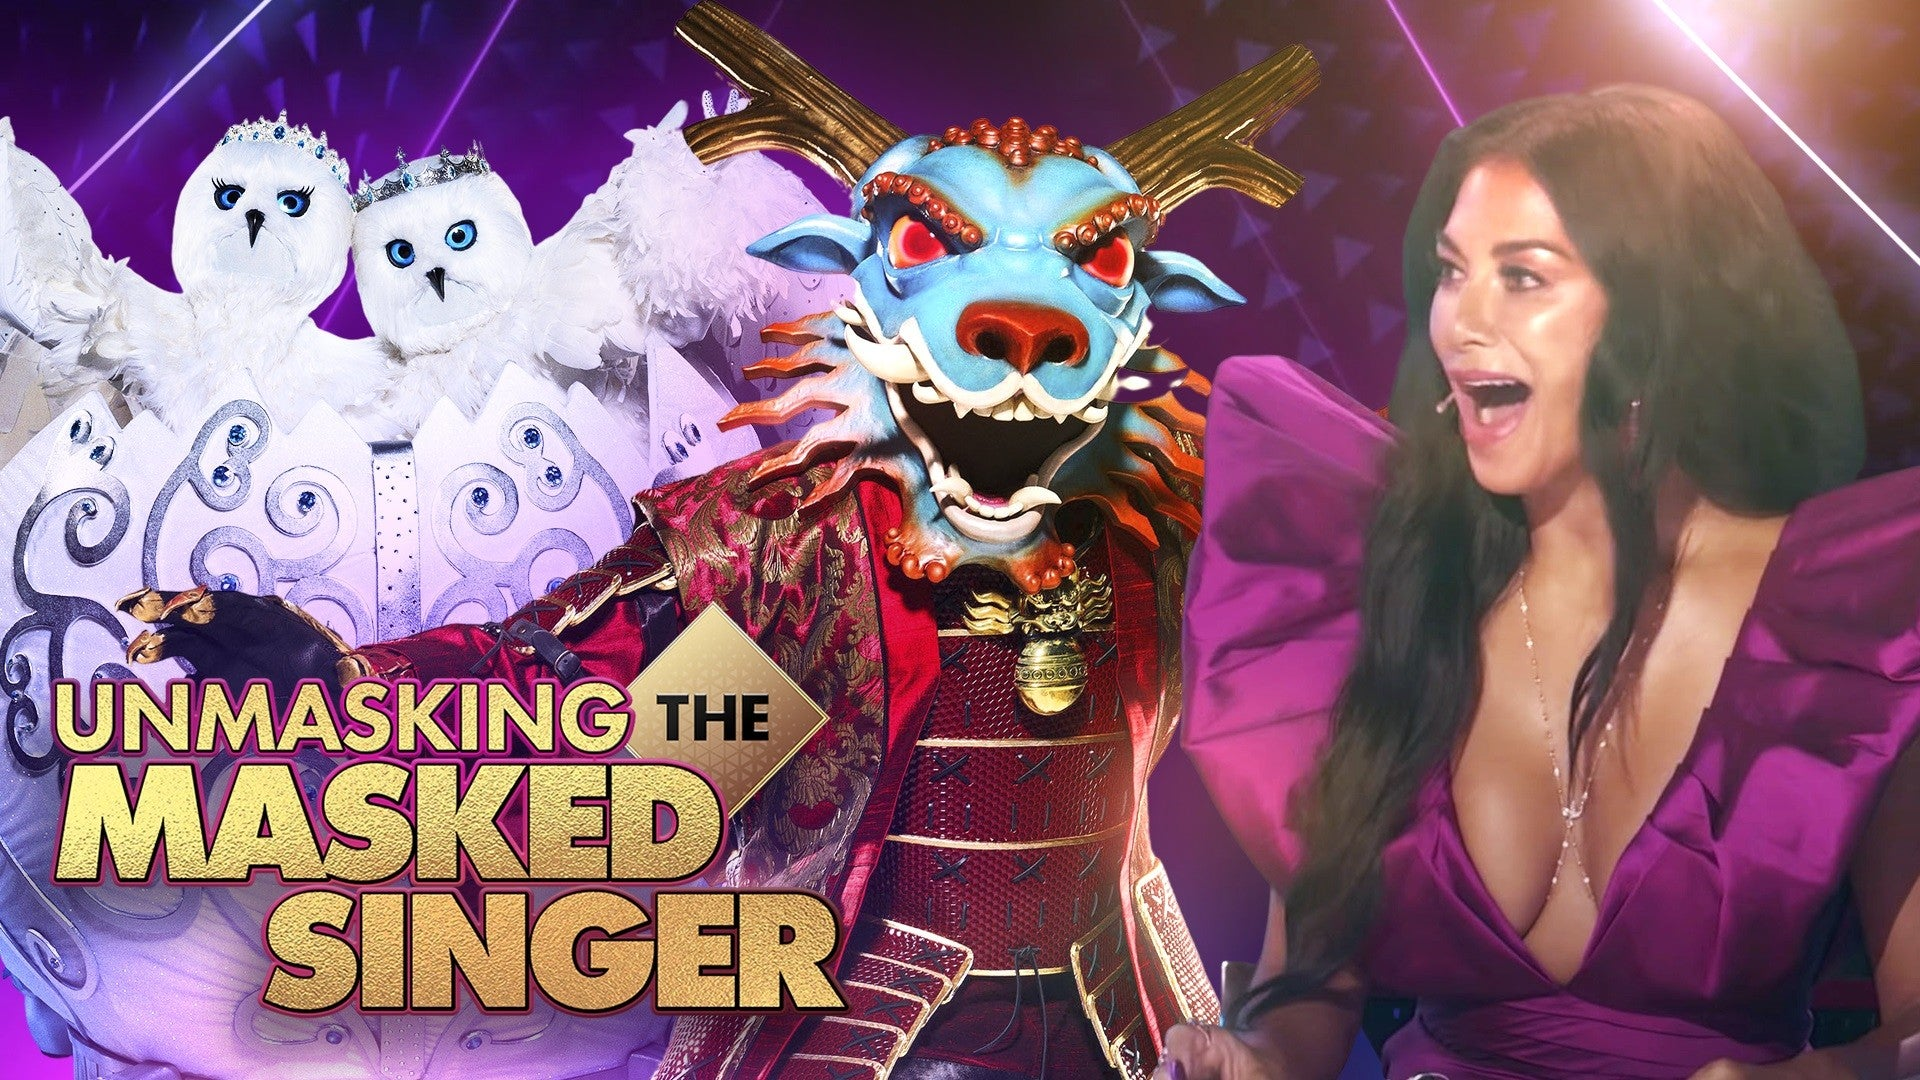 The Masked Singer': Season 4 Clues, Spoilers and Our Best Guesses at Secret Identities | Entertainment Tonight